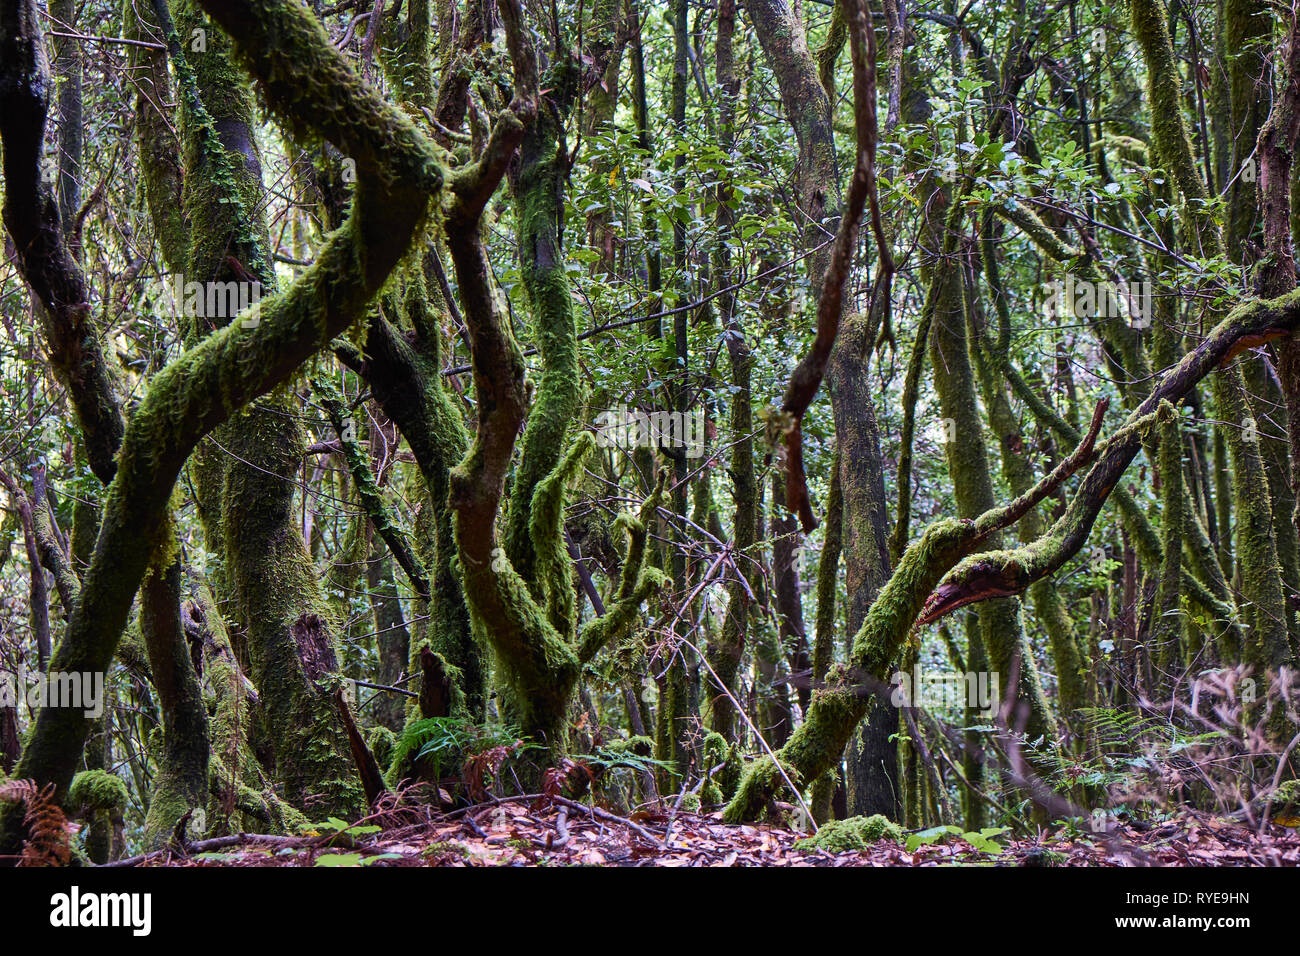 fairytale forest,primeval forest,south east, Cumbre Vieja, Canary Islands,Europe Stock Photo